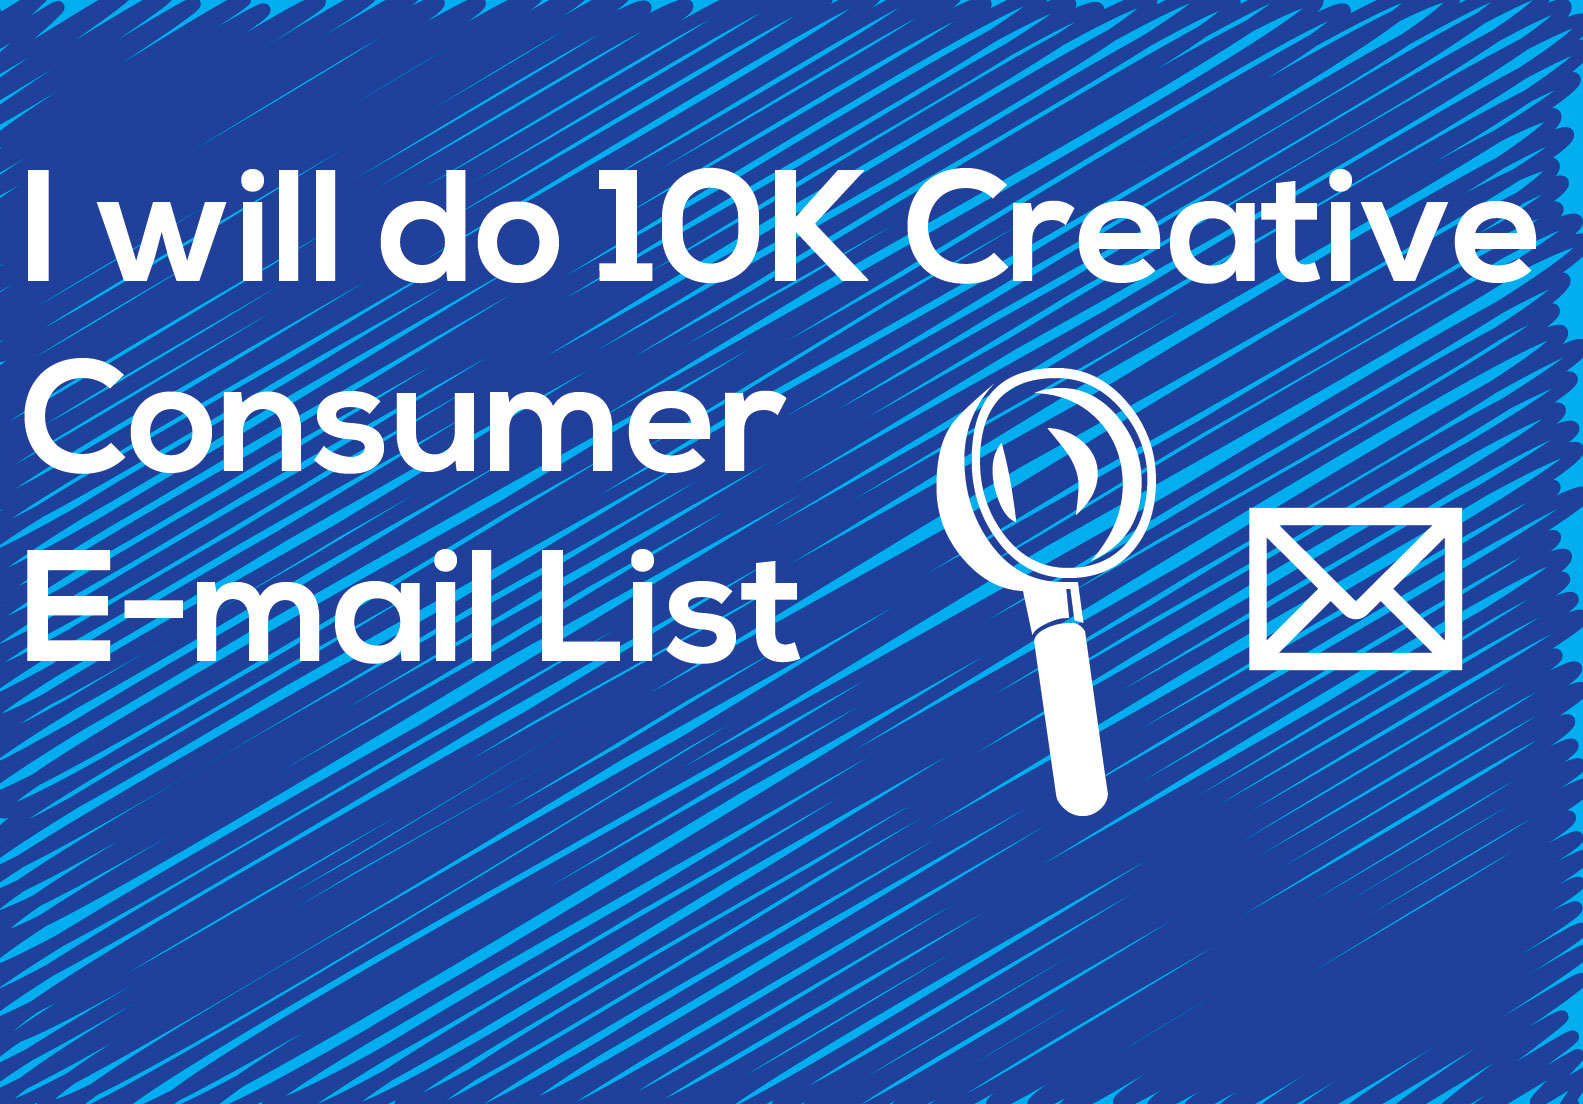 I will do 10K consumer E-mail list